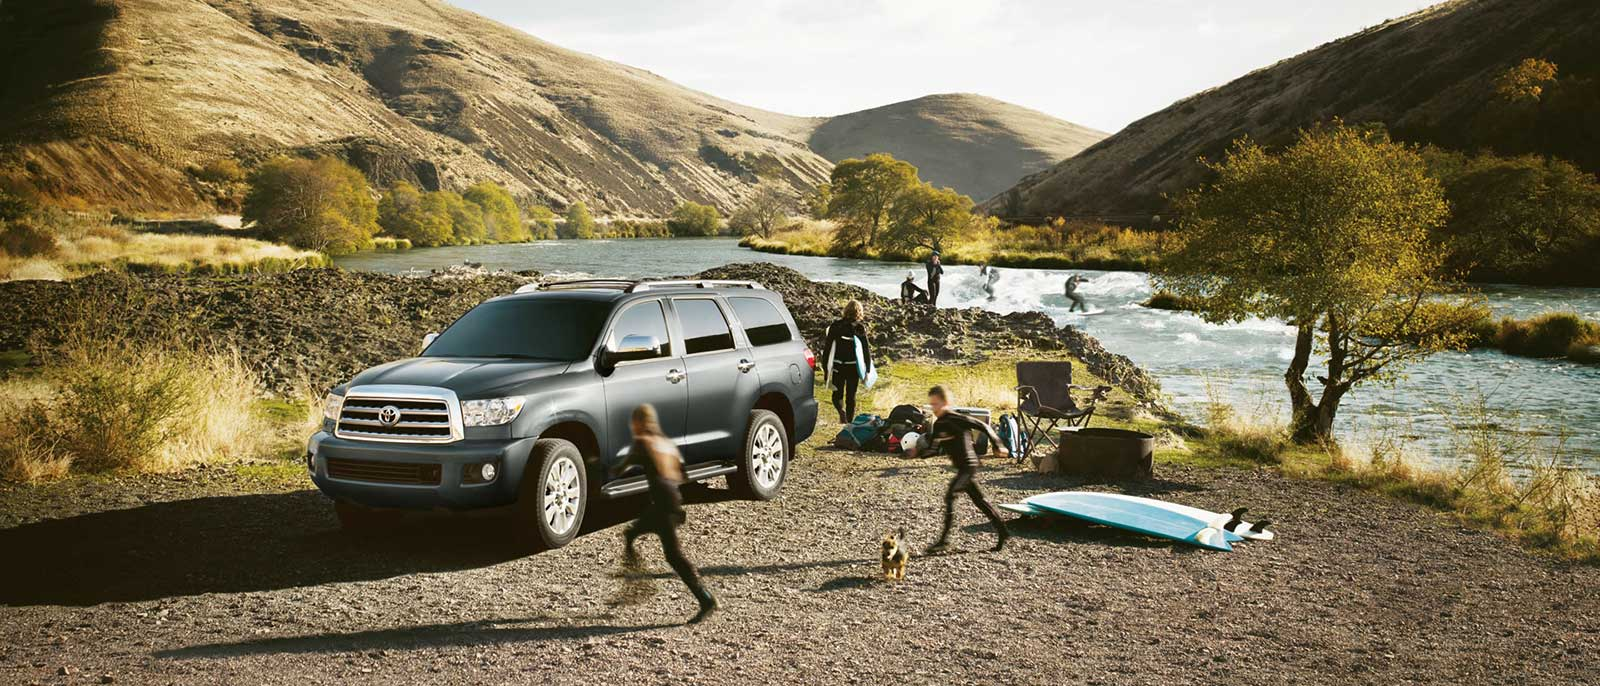 2017 Toyota Sequoia at the beach